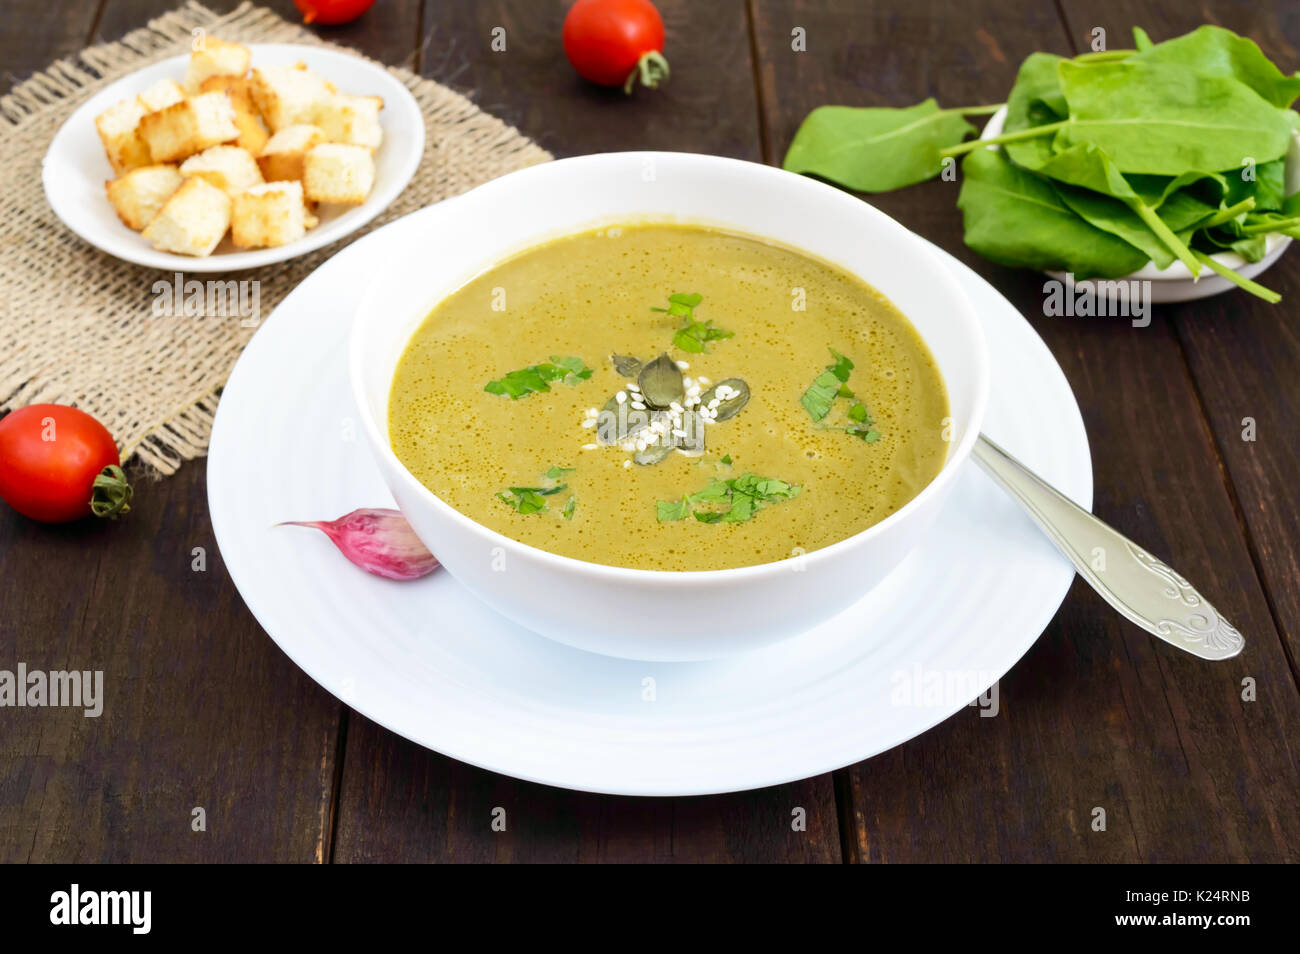 Vegetable cream soup with spinach and potatoes in a white bowl with garlic croutons on a dark wooden background. Stock Photo